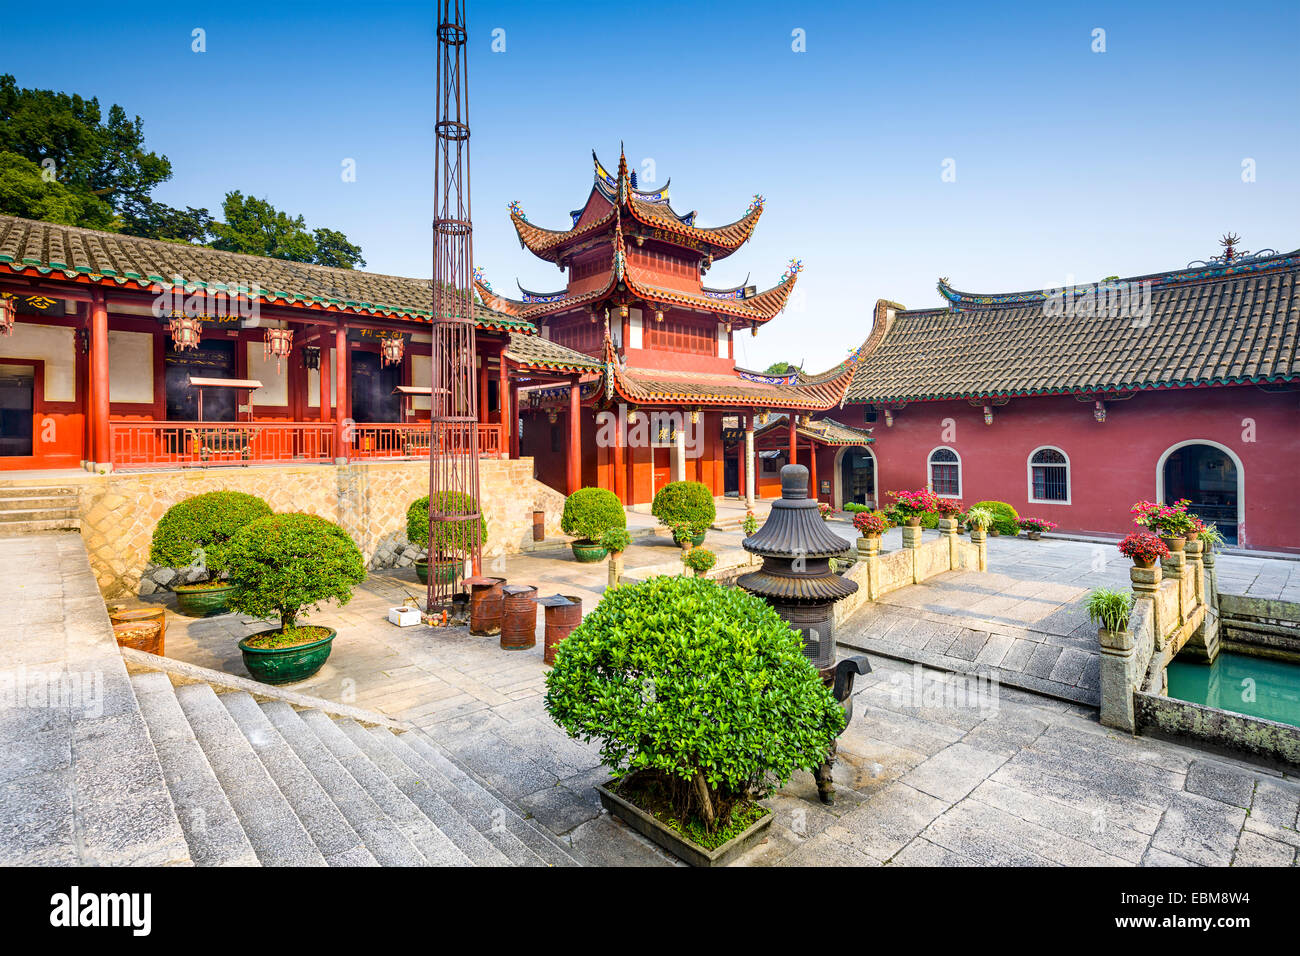 Fuzhou, Fujian at Yongquan Temple on Gu Shan Mountain. - Stock Image